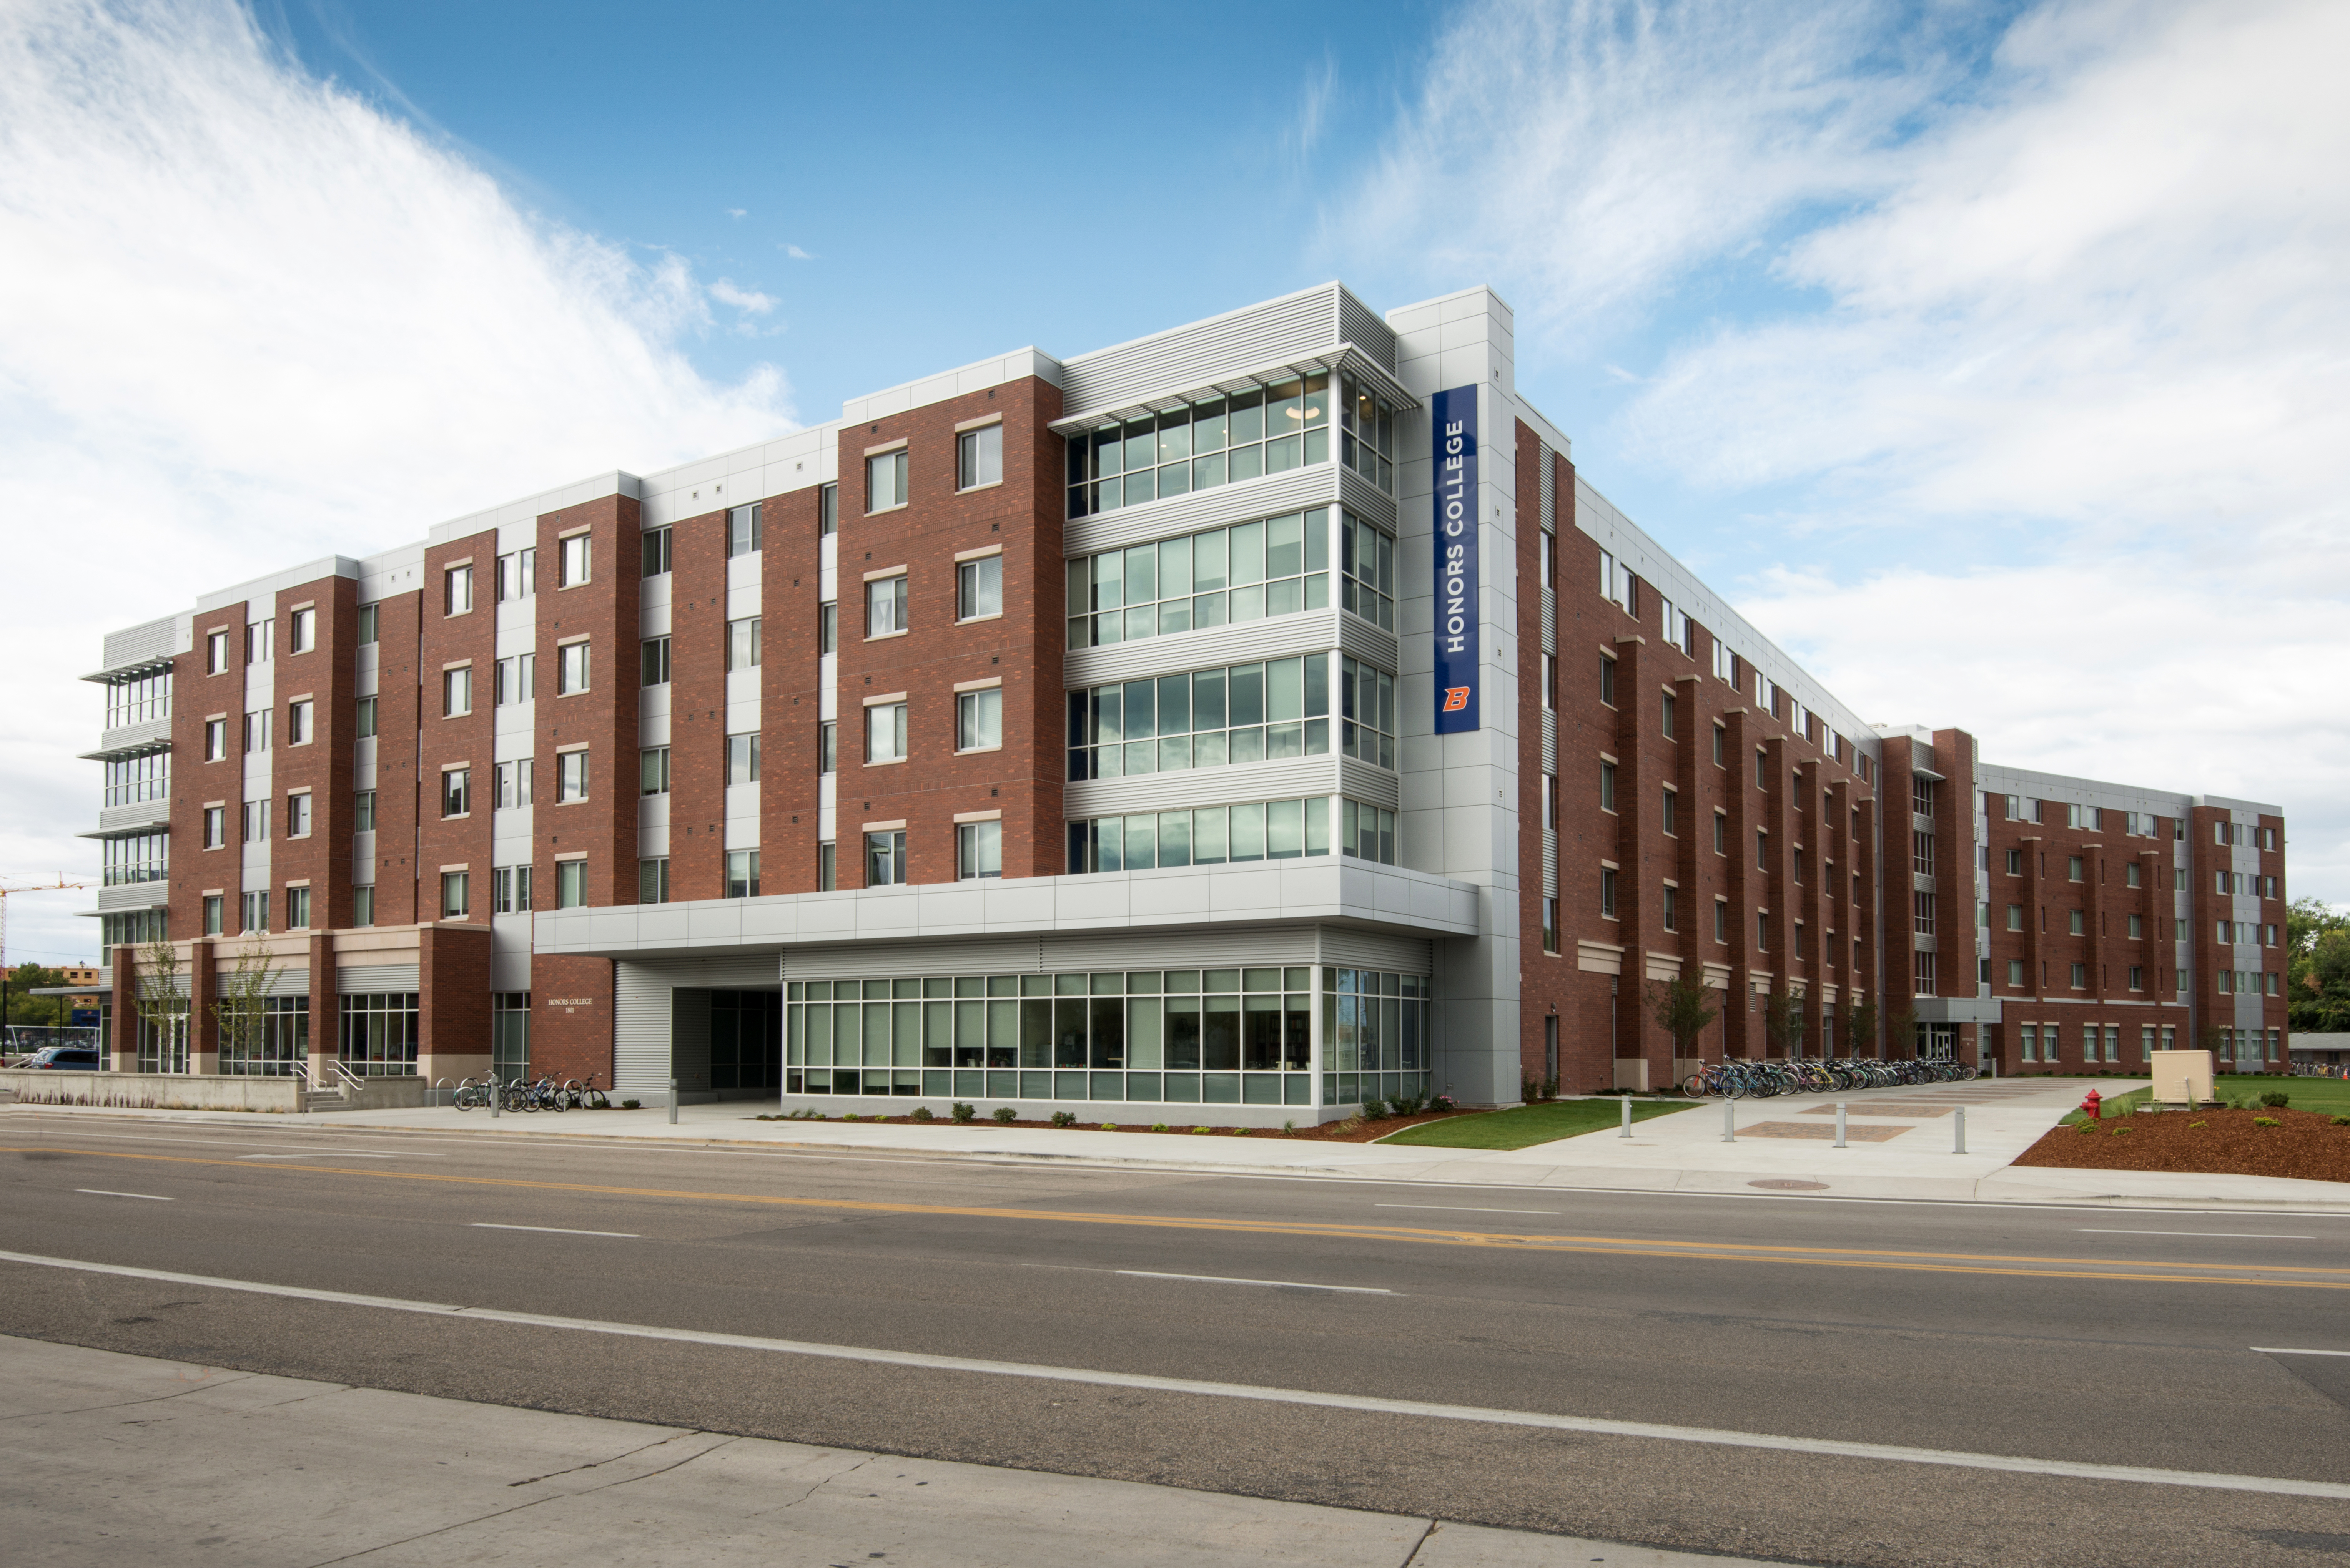 2017: Honors College/Sawtooth Hall